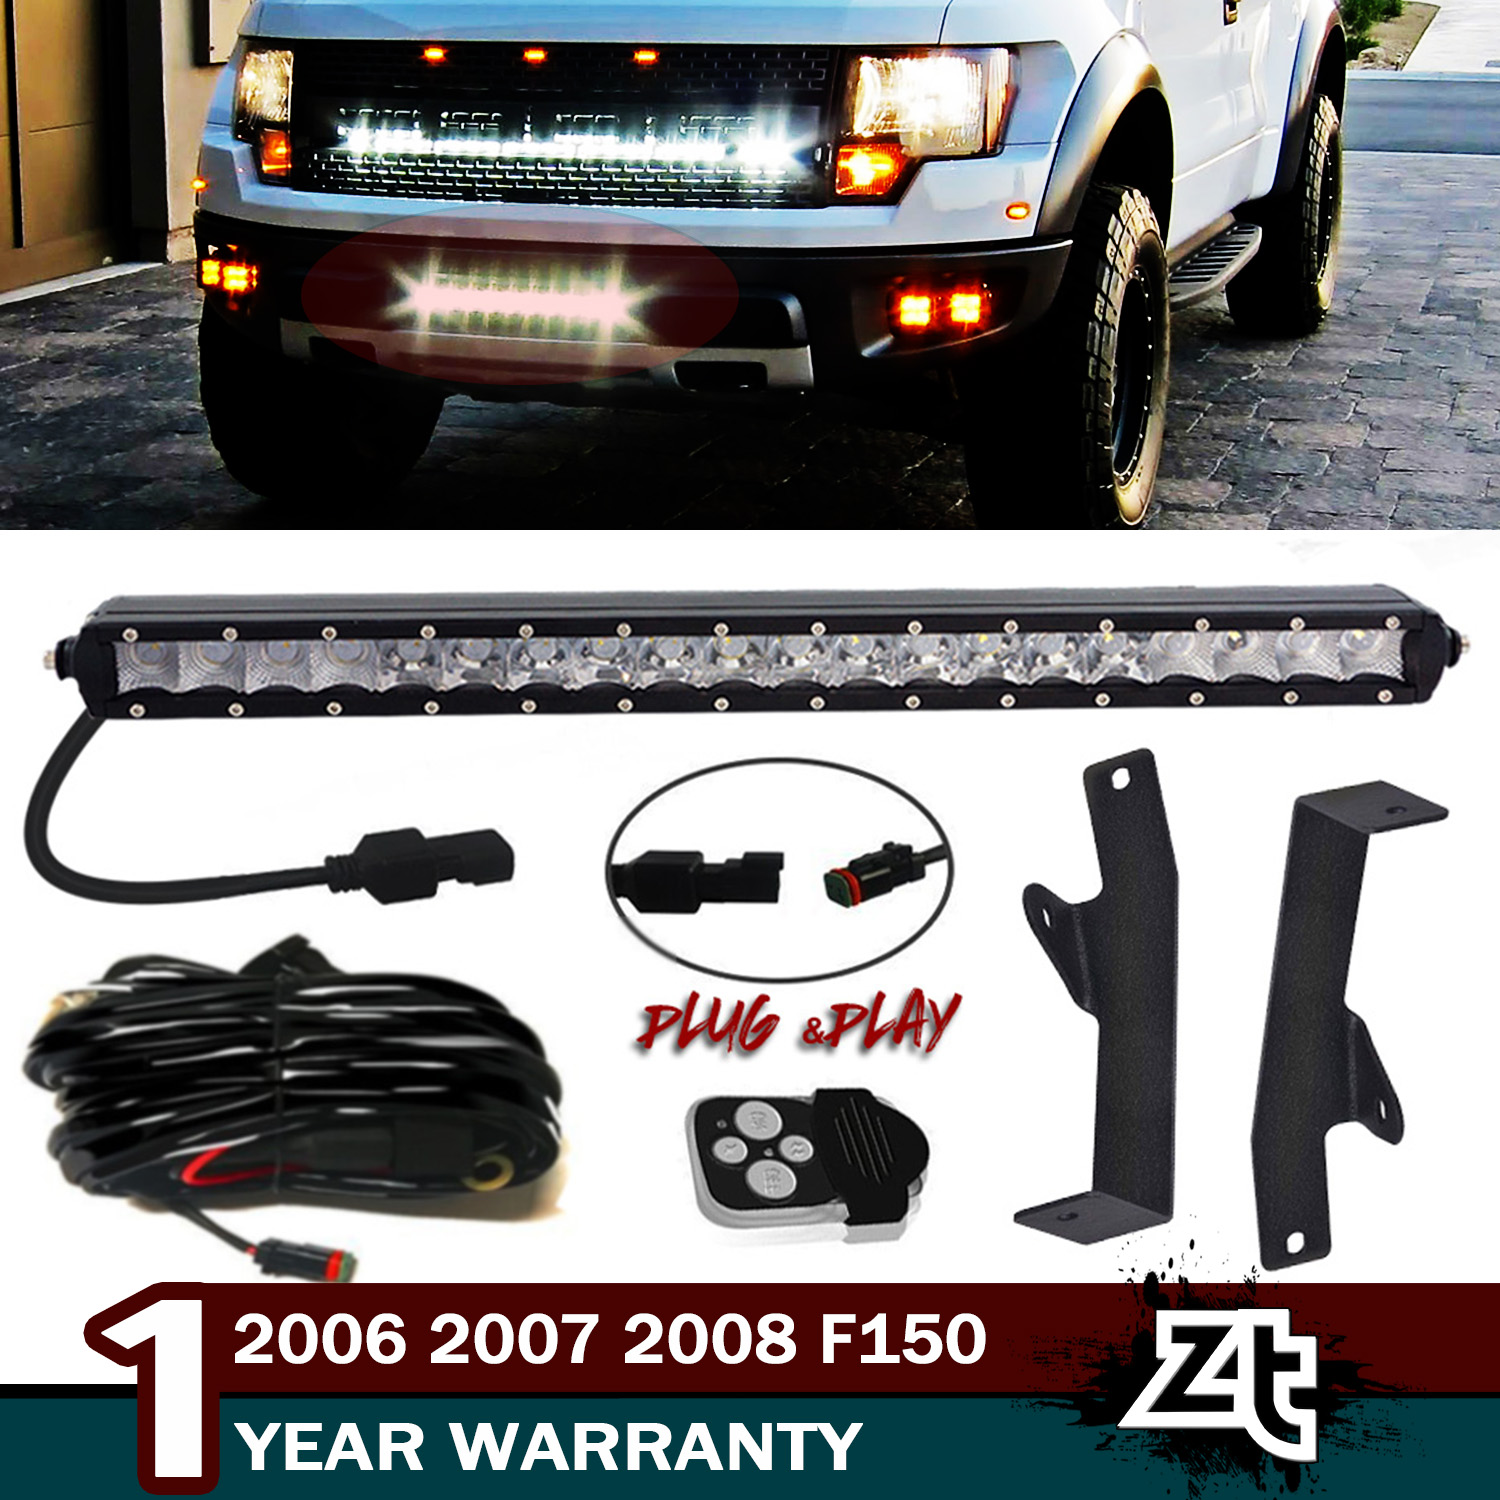 Details About 20 Led Light Bar Hidden Bumper Mount Bracket Wire Kit Fit 06 08 Ford F150